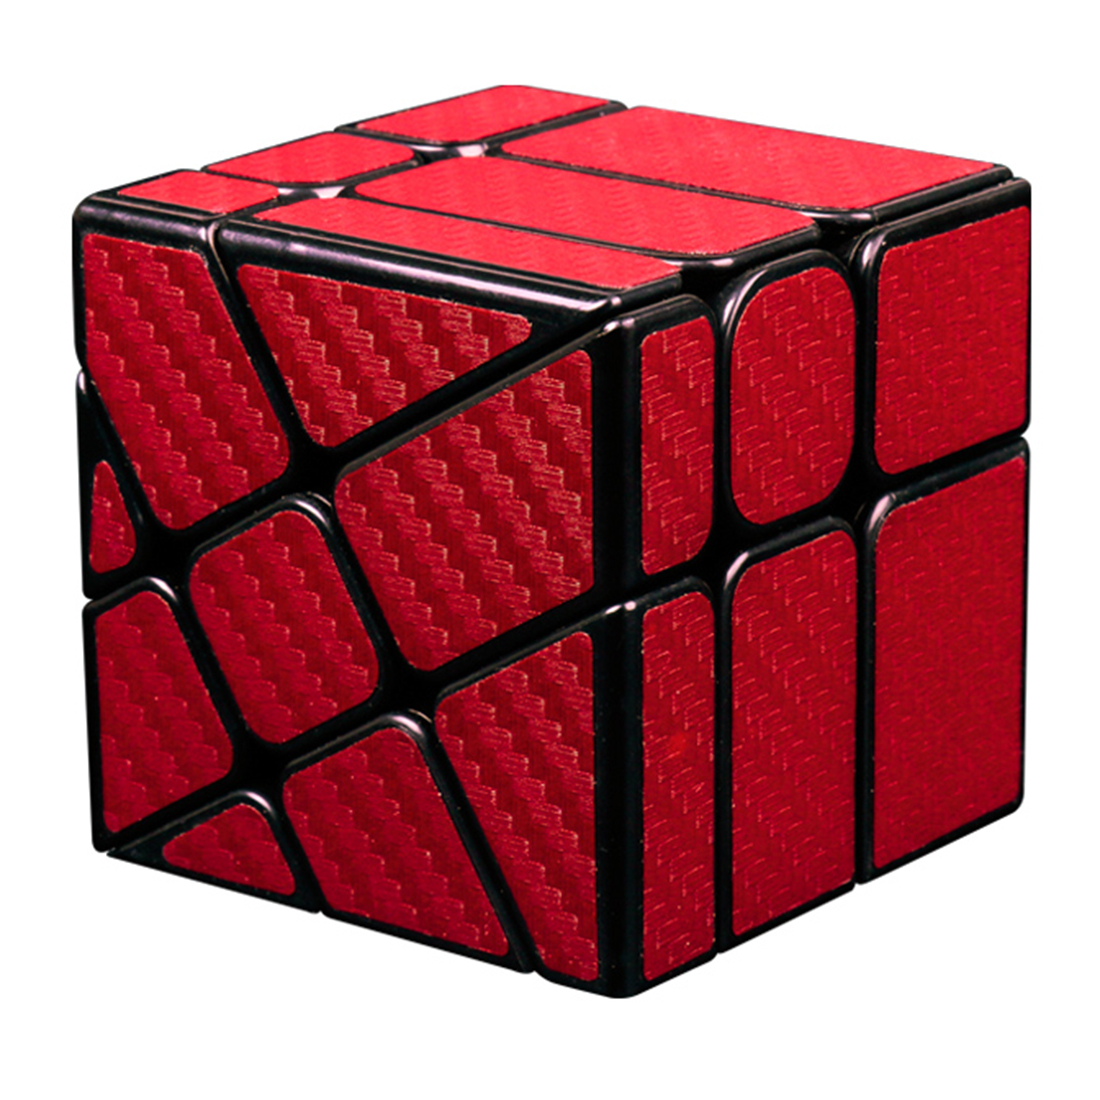 MF8830 Cubing Classroom Carbon Fiber Cube Hotwheel Funny Twisted Magic Cube Puzzle Toy for Challange - Red luxury star crystal rhinestone lapel pins and brooches for women large mother of pearl suit broches bridal wedding jewelry x012